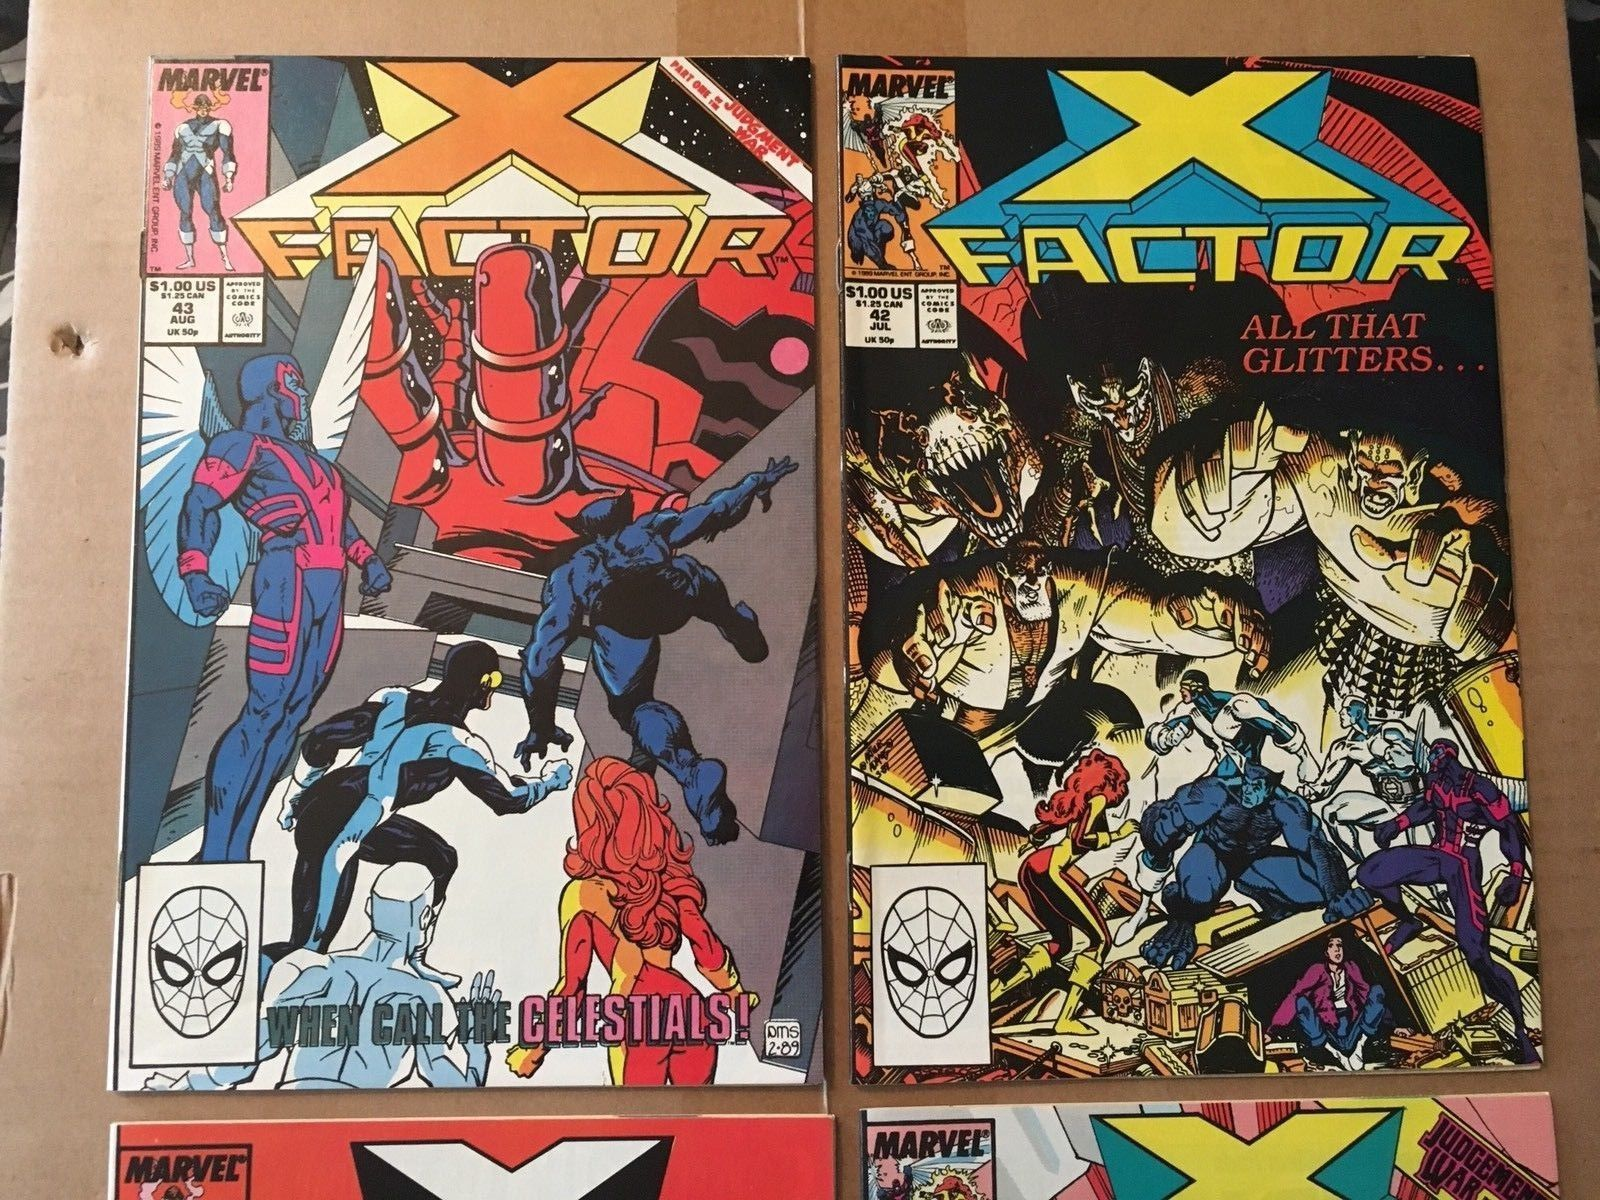 X-FACTOR #41 42 43 44 Marvel Comic Book Lot Of 4 VF+/NM Condition 1989 X-MEN